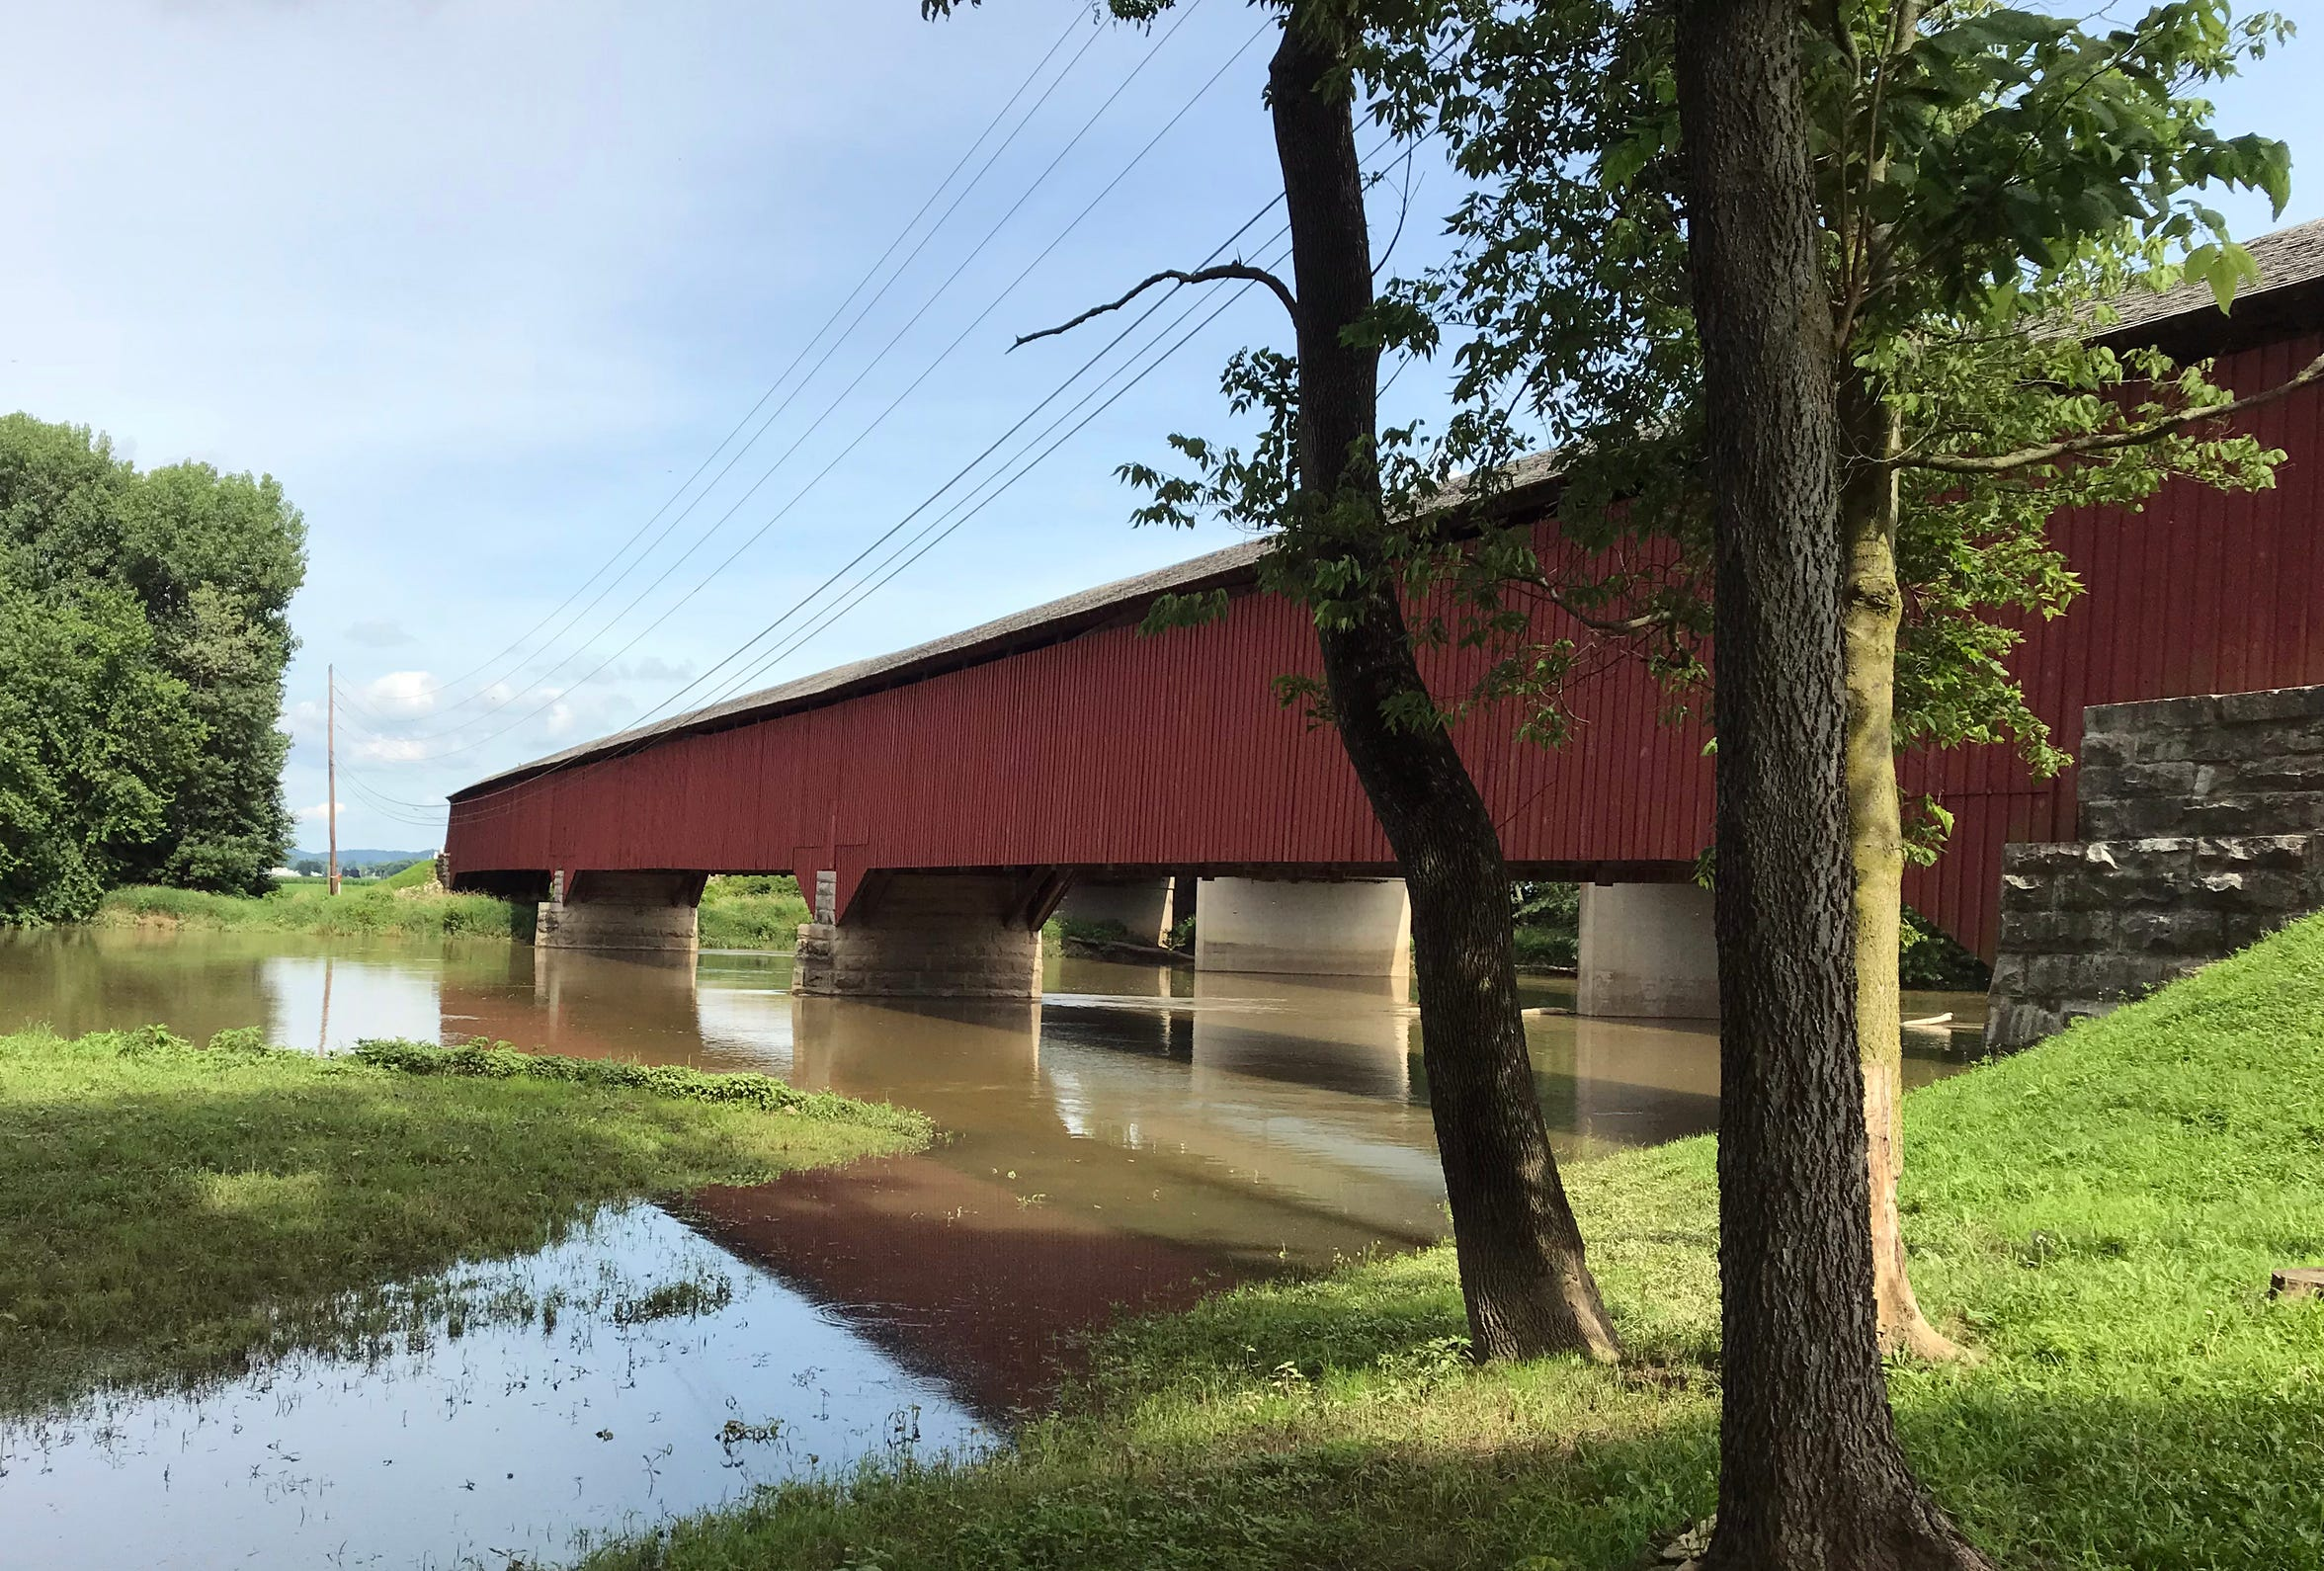 The Medora covered bridge in Jackson County is the longest covered bridge in Indiana and, depending on how it is measured, the longest in the United States. June 28, 2018